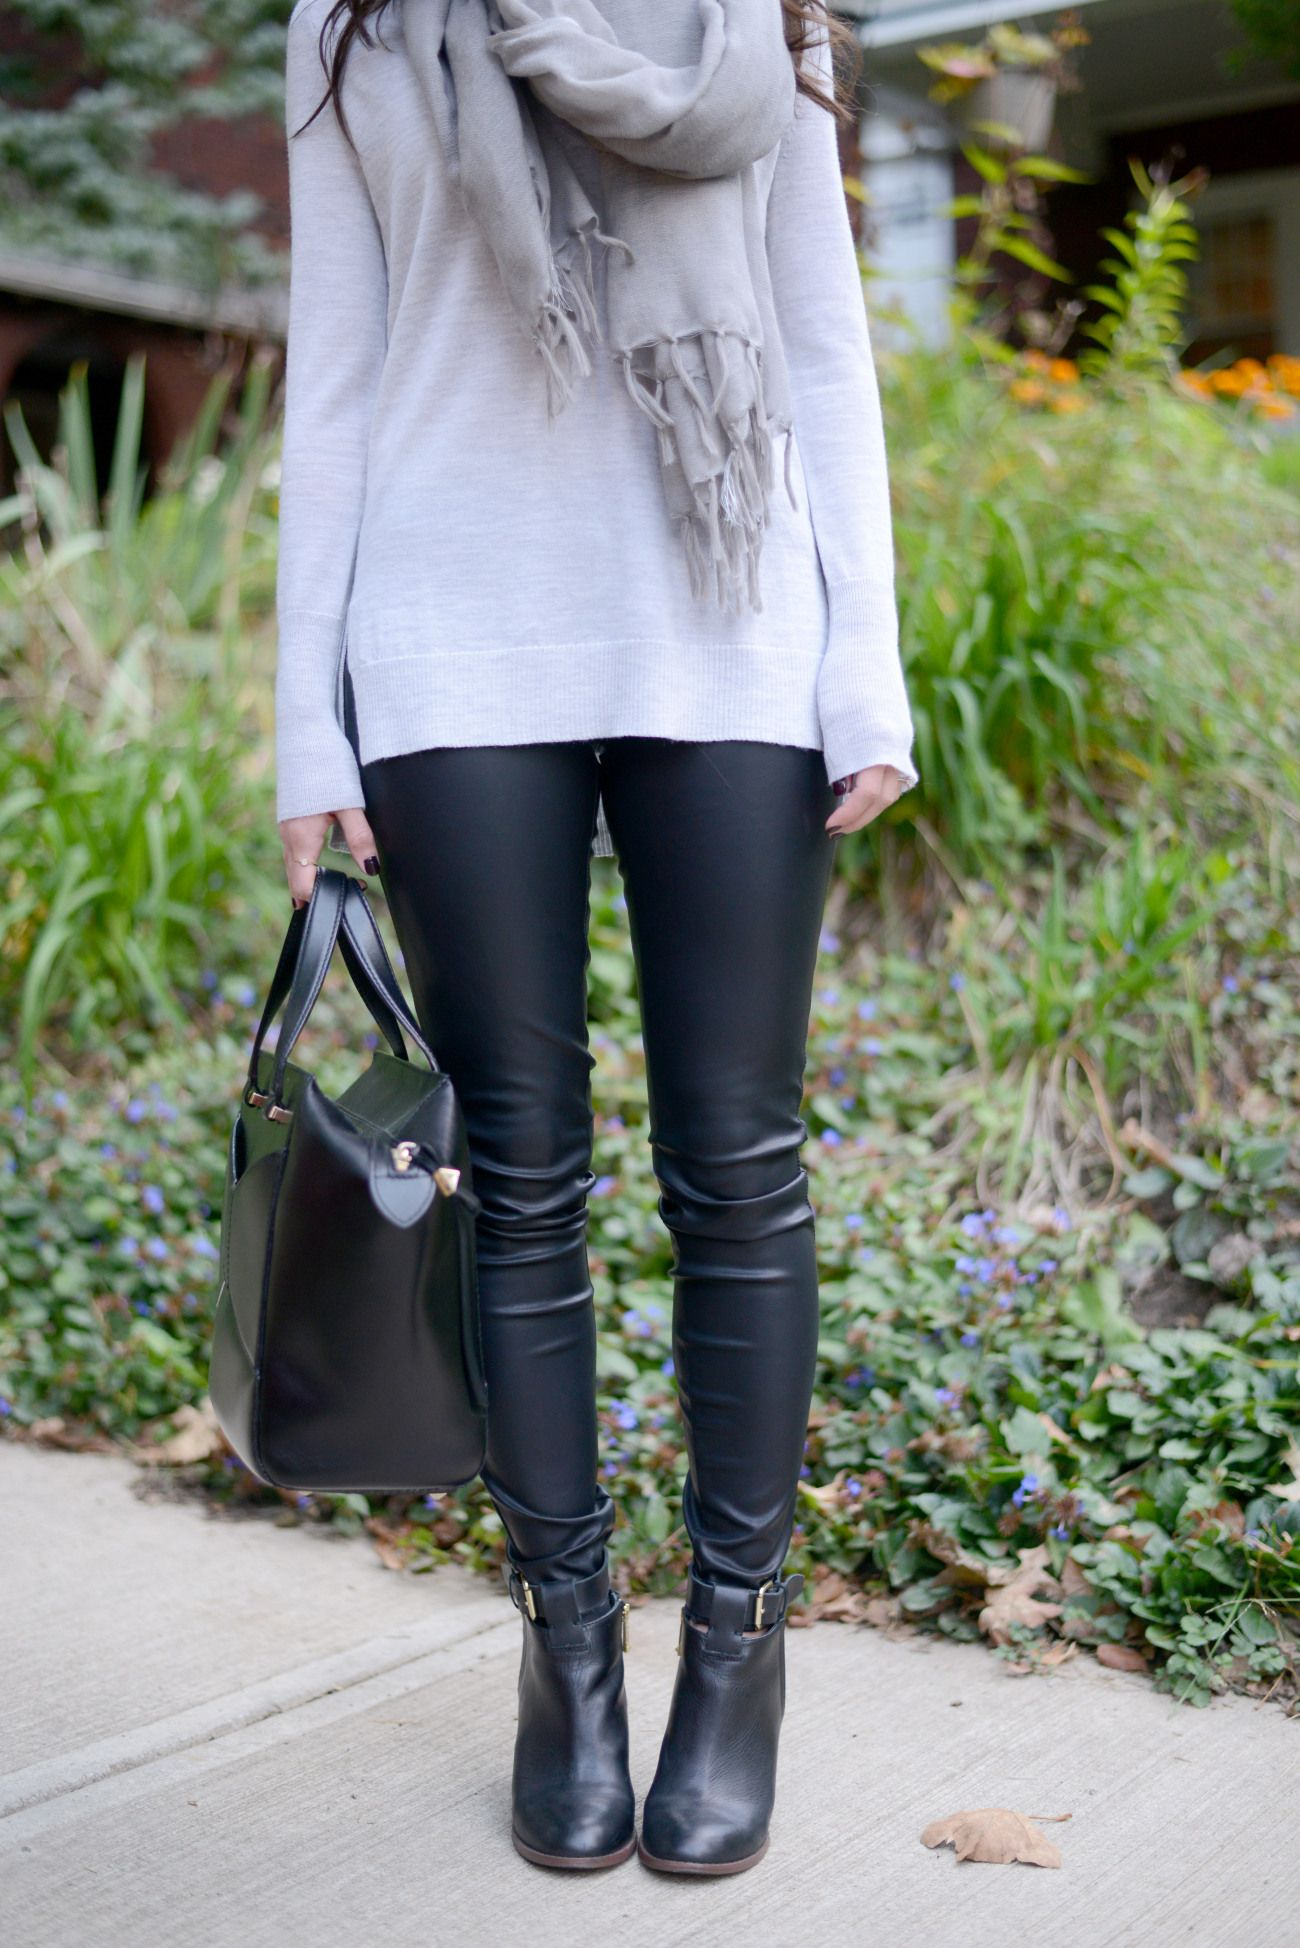 641474e1ed Click to see more fall outfit inspiration like these faux leather pants